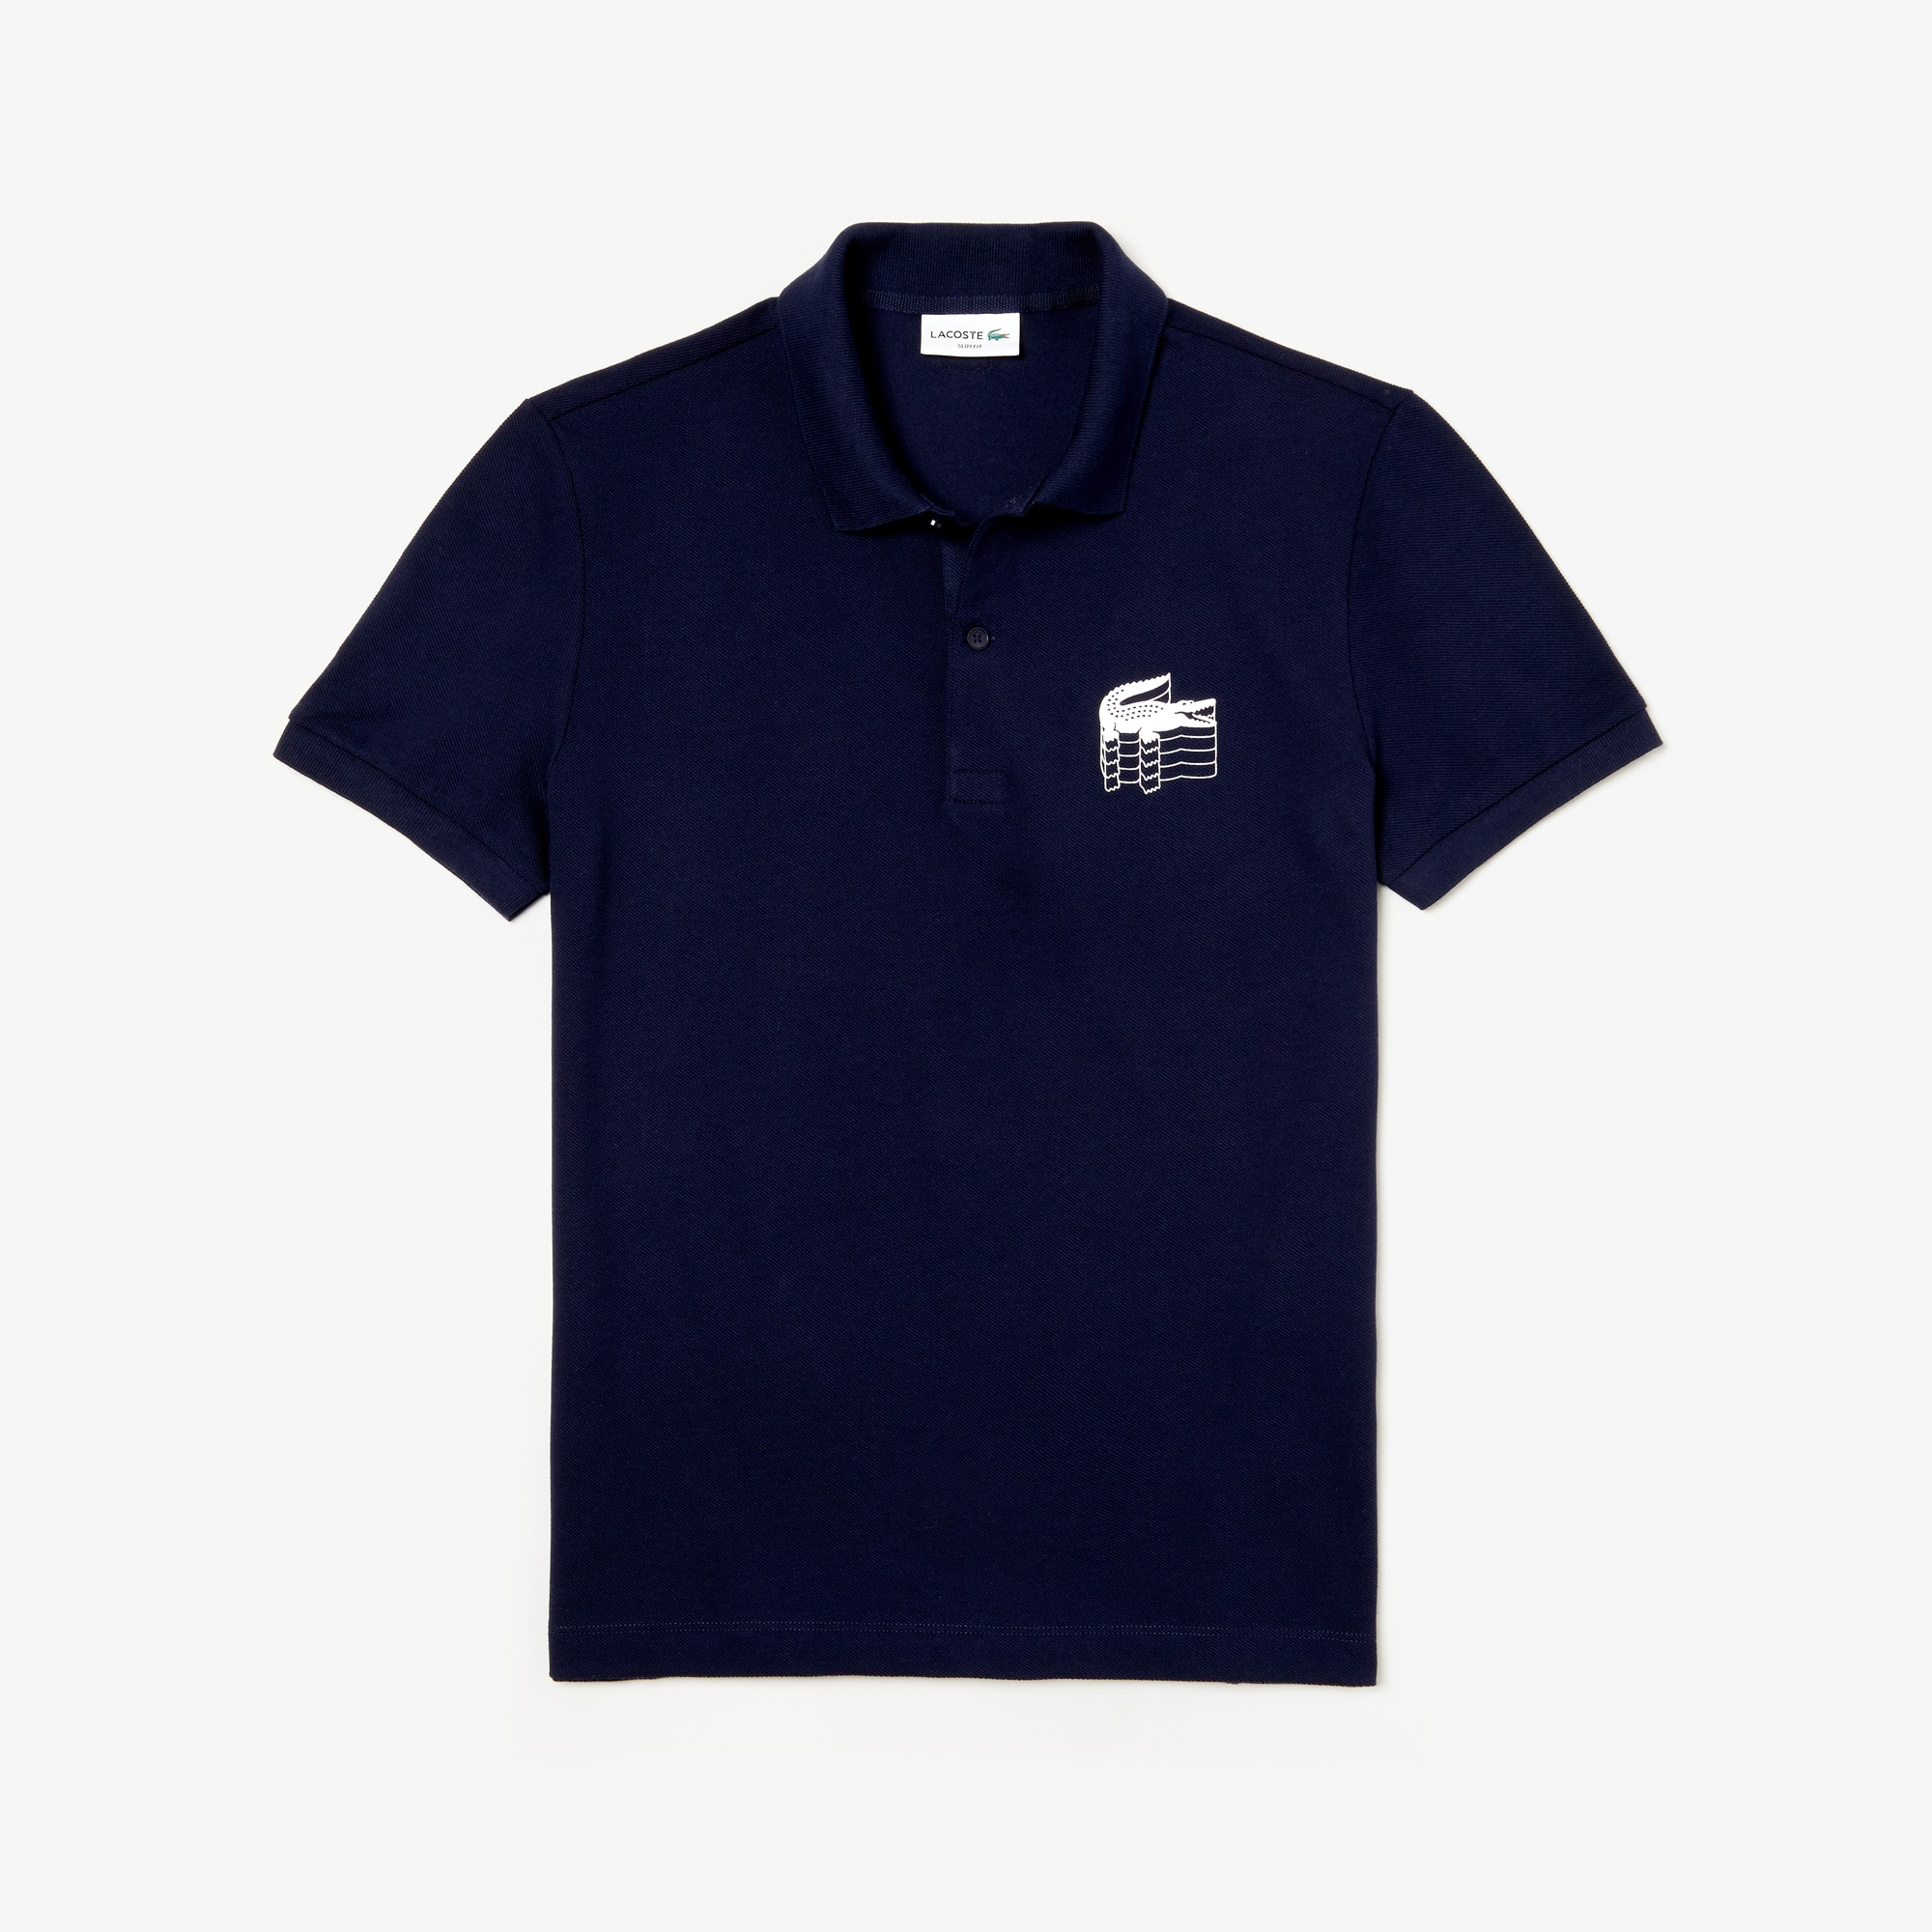 Men's Lacoste Slim Fit 3D Croc Cotton Petit Piqué Polo Shirt